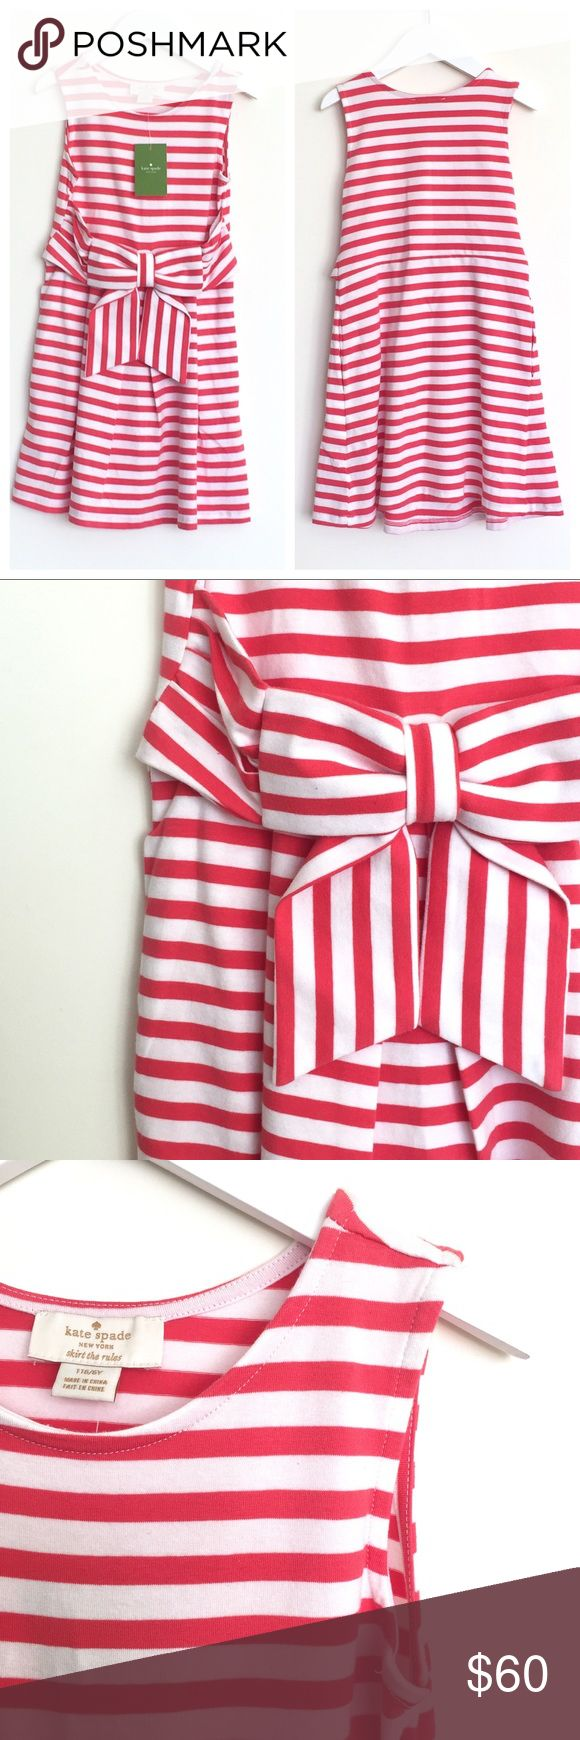 KATE SPADE 'Jillian' Skirt the Rules Dress (6Y) Brand New with Tags / Style: 'Jillian' Dress from Skirt the Rules Line / Color: Red and white stripe pattern throughout / center bow detail / 2 hidden side pockets / 95% cotton 5% elastane / machine wash / pet-free & smoke free home  /Perfect dressed up or down!! kate spade Dresses